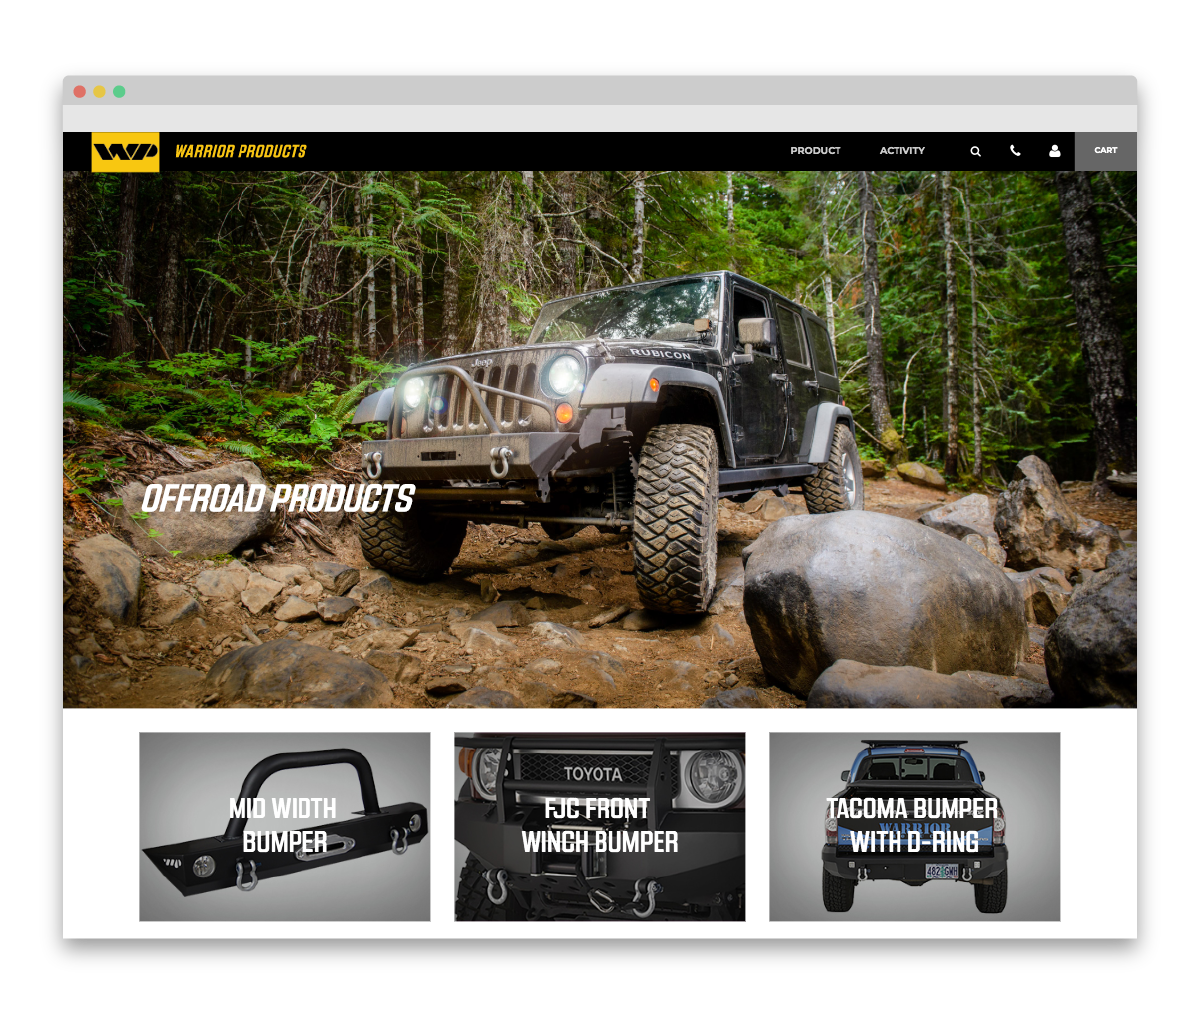 Warrior Products custom landing page - offroad